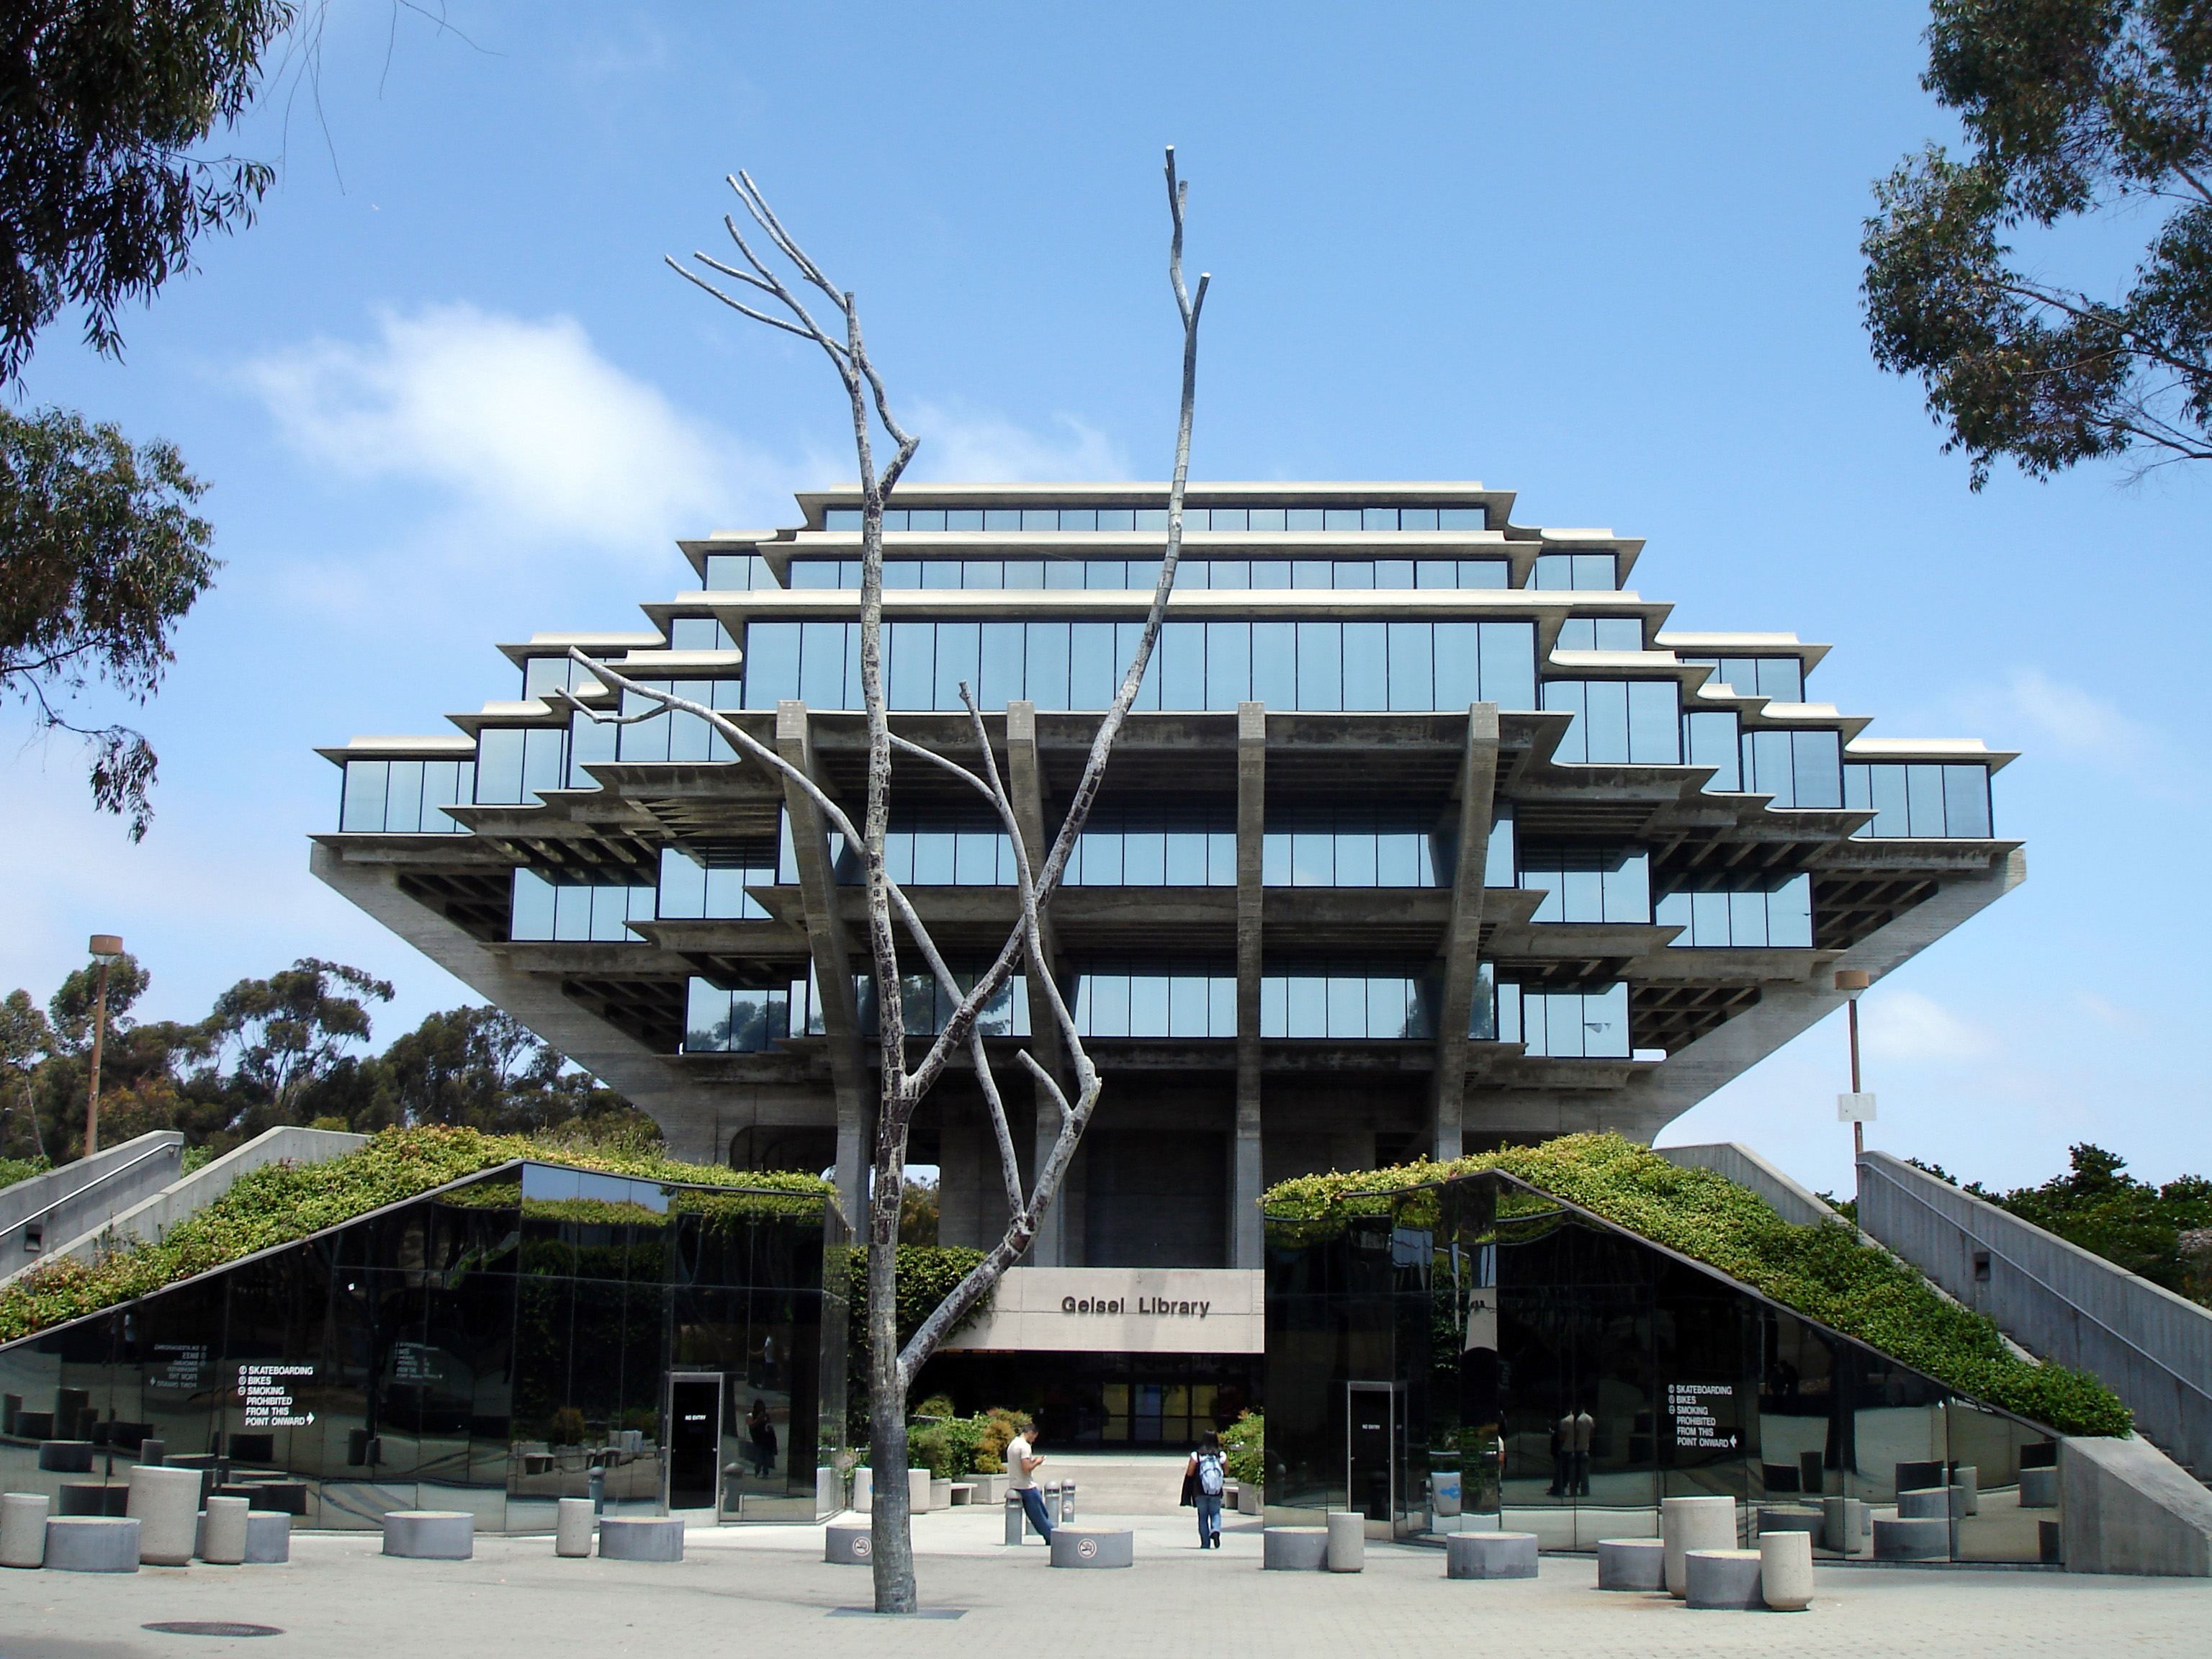 Brutalist Architecture: What is Brutalism? | Architecture & Design